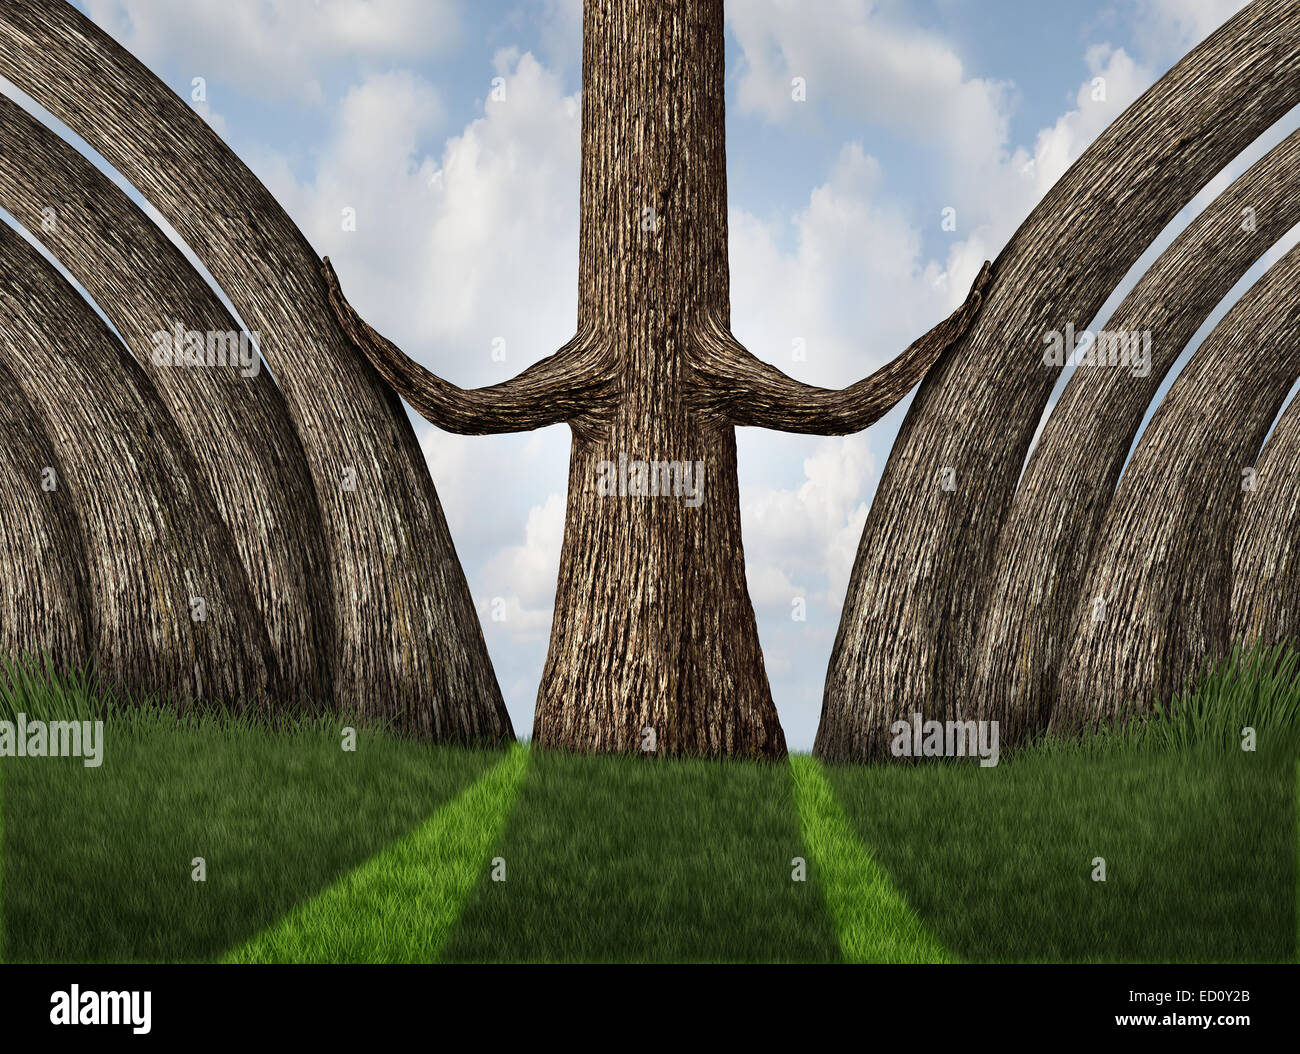 Pushing out the competition as a career and ambition business concept as a metaphor with a powerful tree moving - Stock Image